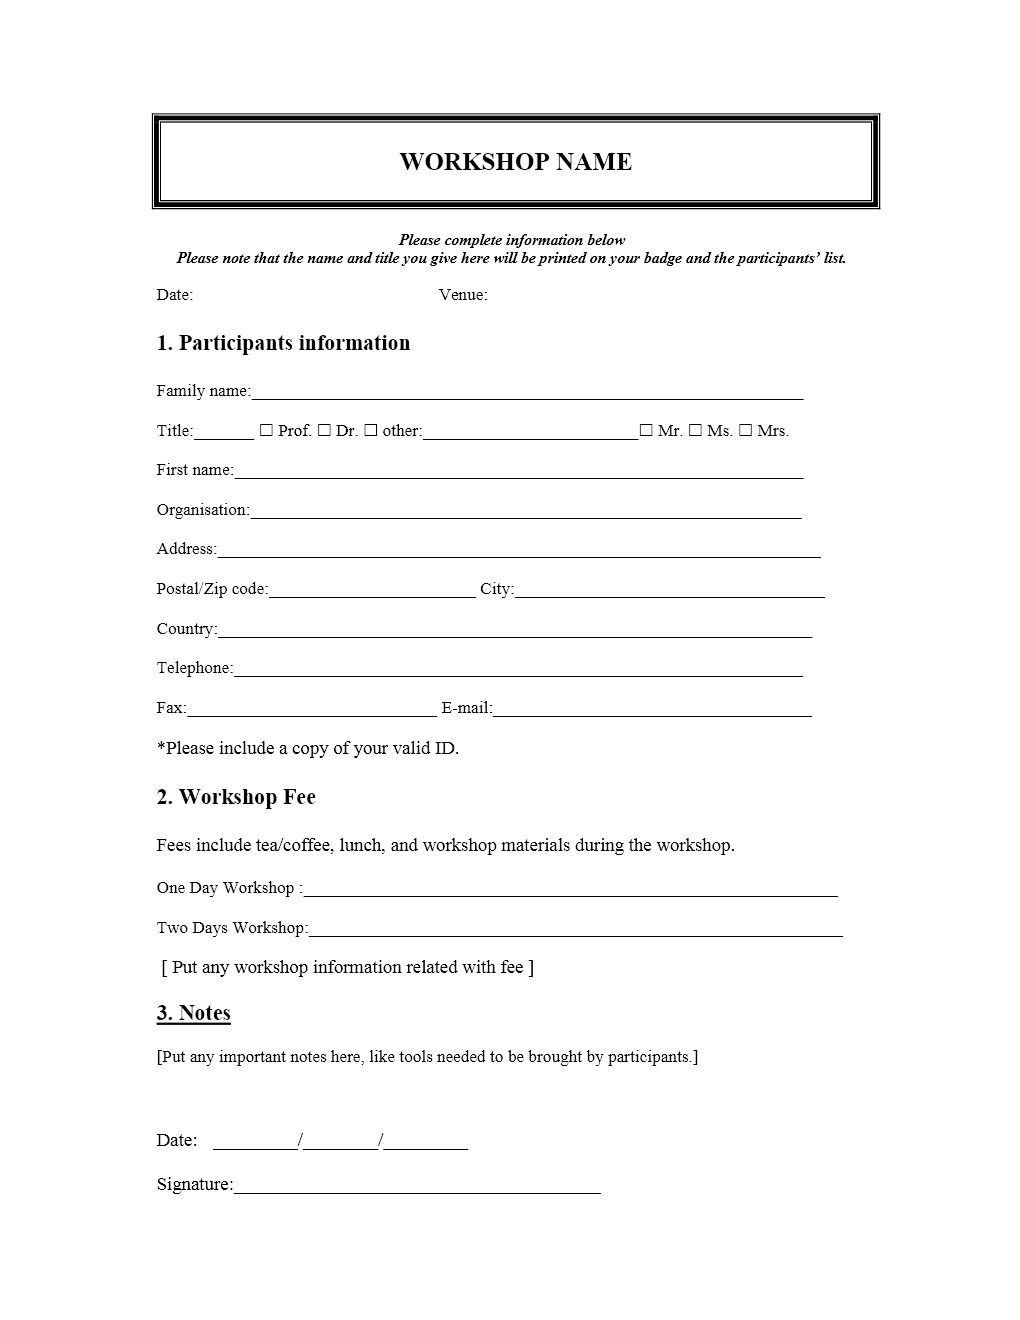 registration form template free - Boat.jeremyeaton.co